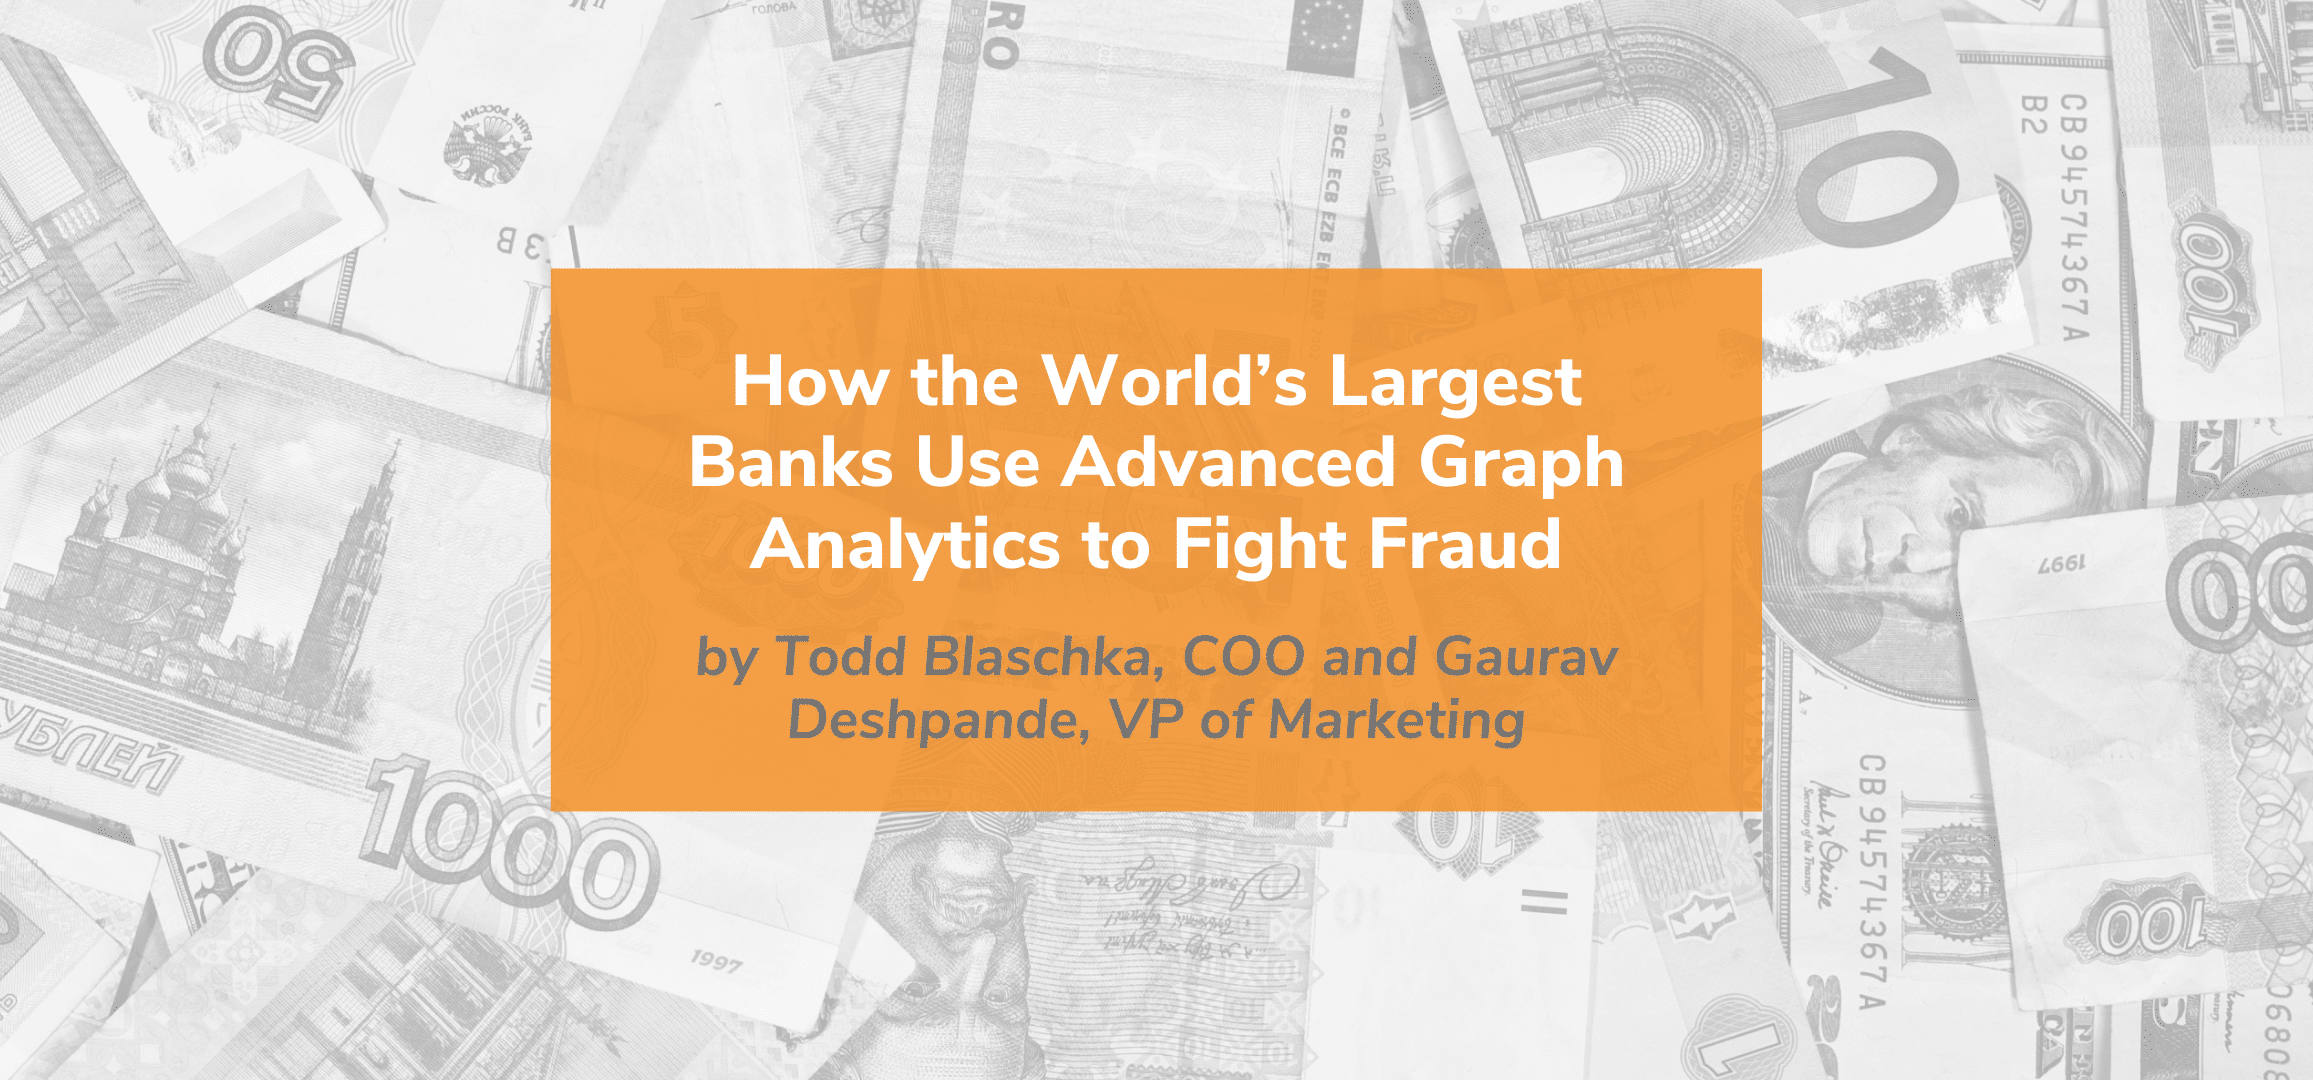 How the World's Largest Banks Use Advanced Graph Analytics to Fight Fraud